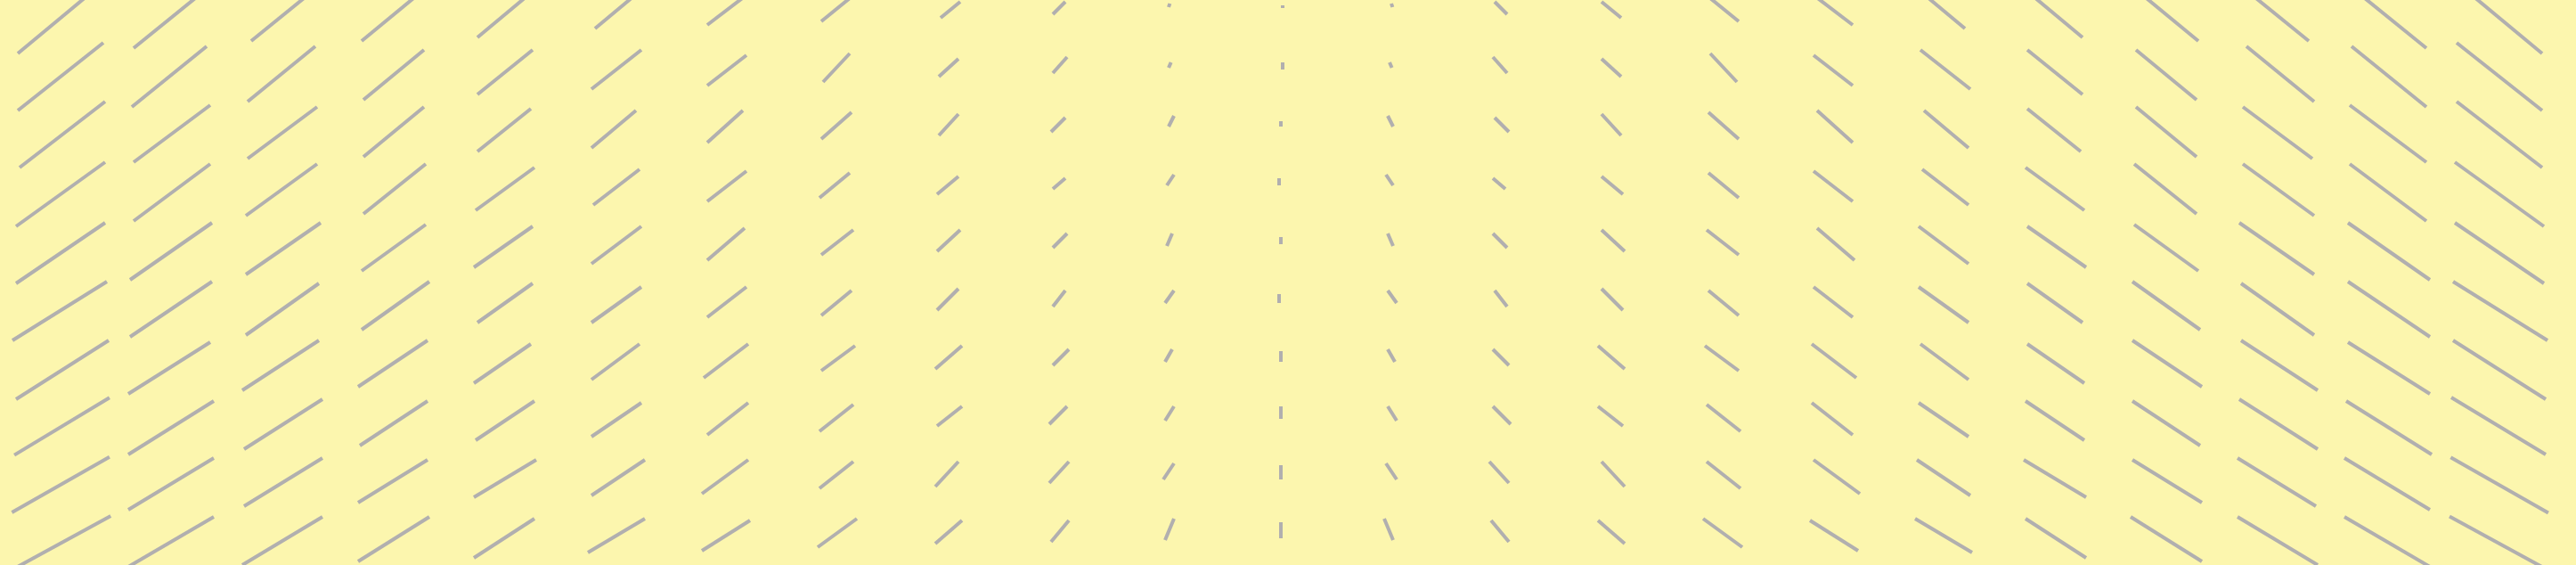 yellow nothingness pattern